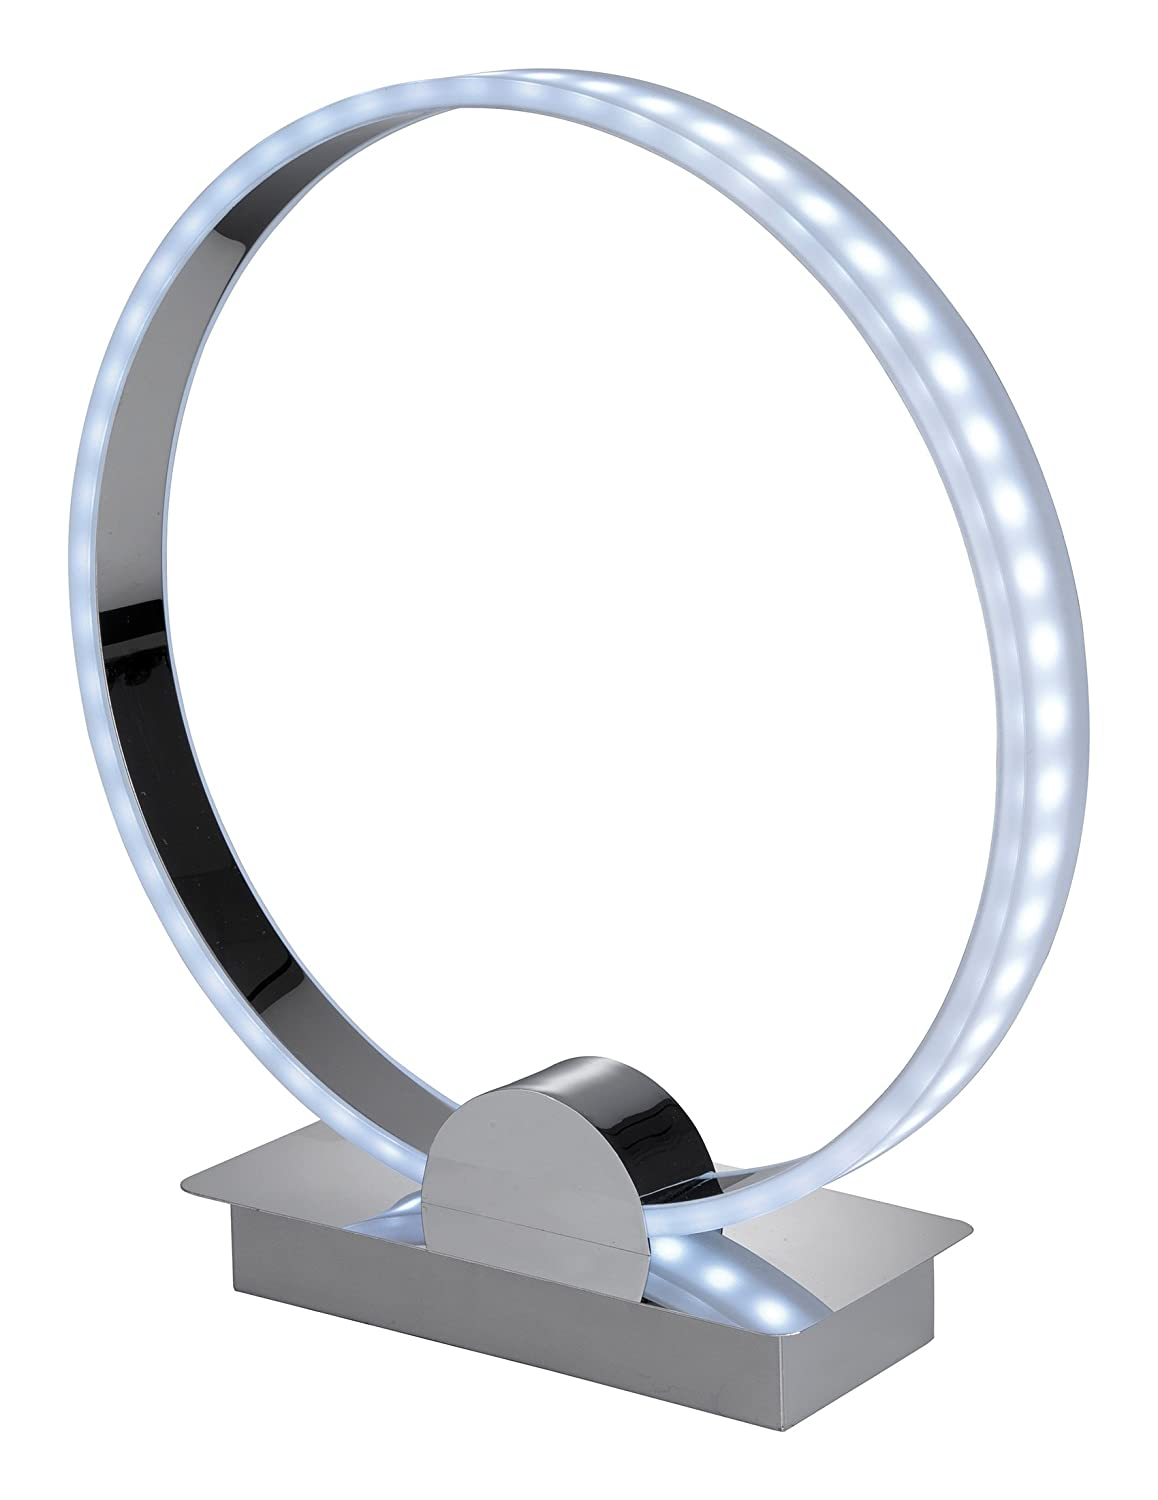 firstlight ch  watt led ring table lamp chrome with rgb  - firstlight ch  watt led ring table lamp chrome with rgb led'samazoncouk lighting